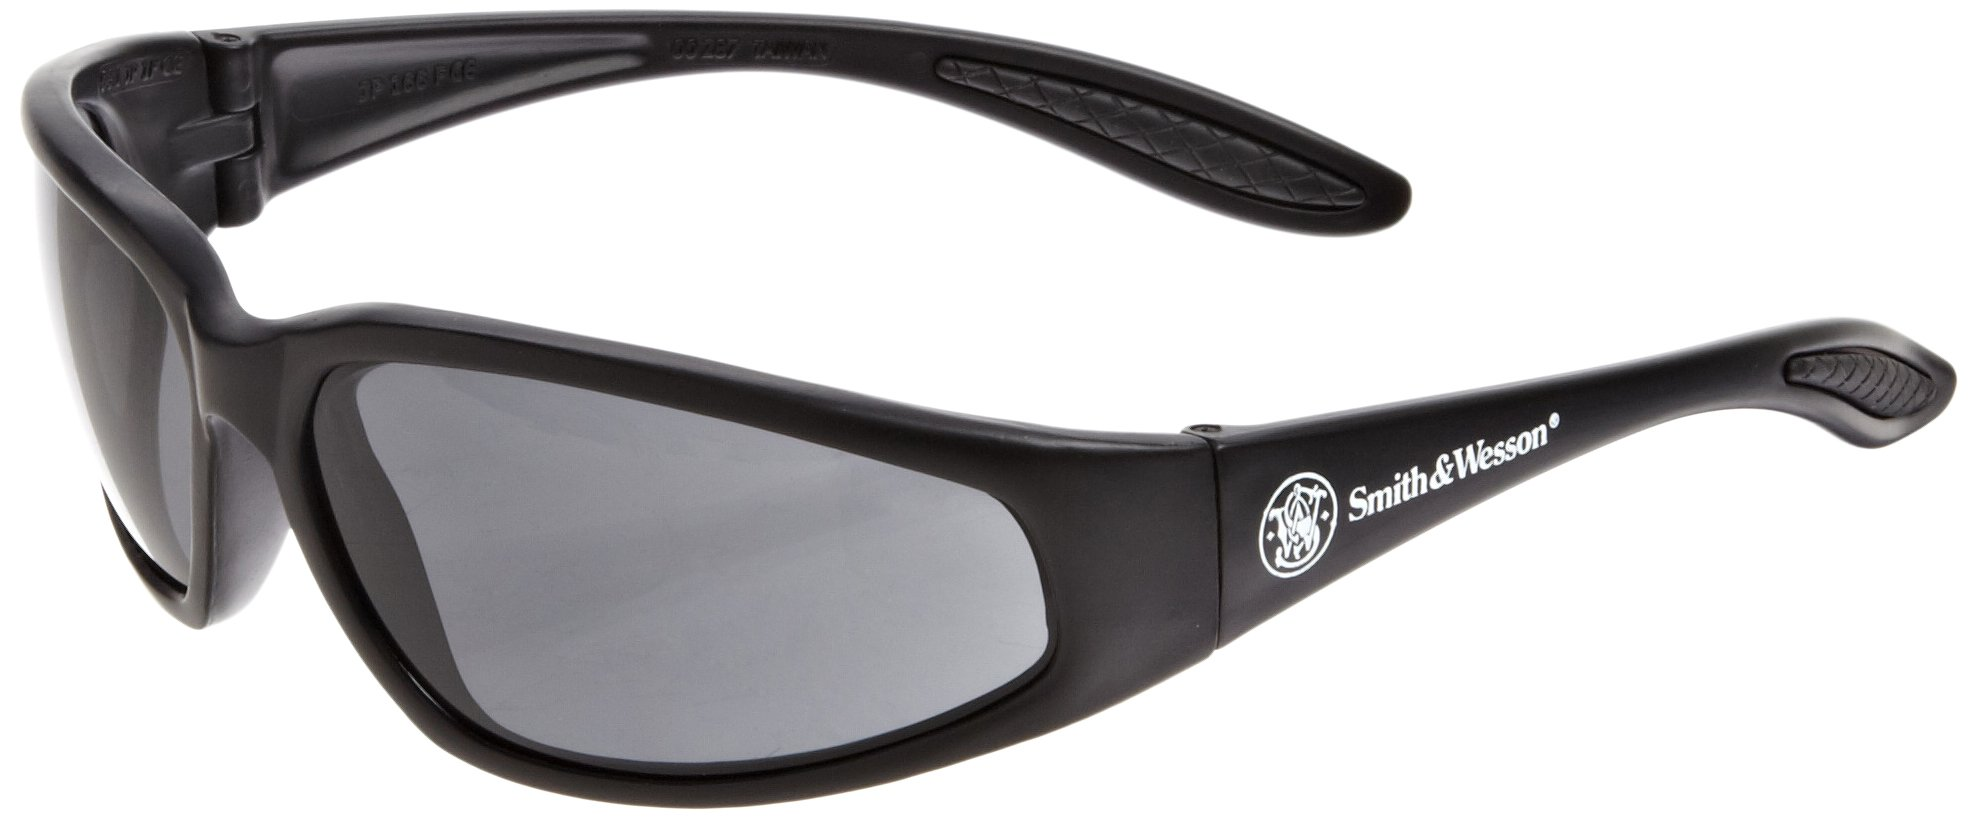 Smith & Wesson 19859 38 Special Safety Glasses, Smoke Lenses with Black Frame, Pack of 12